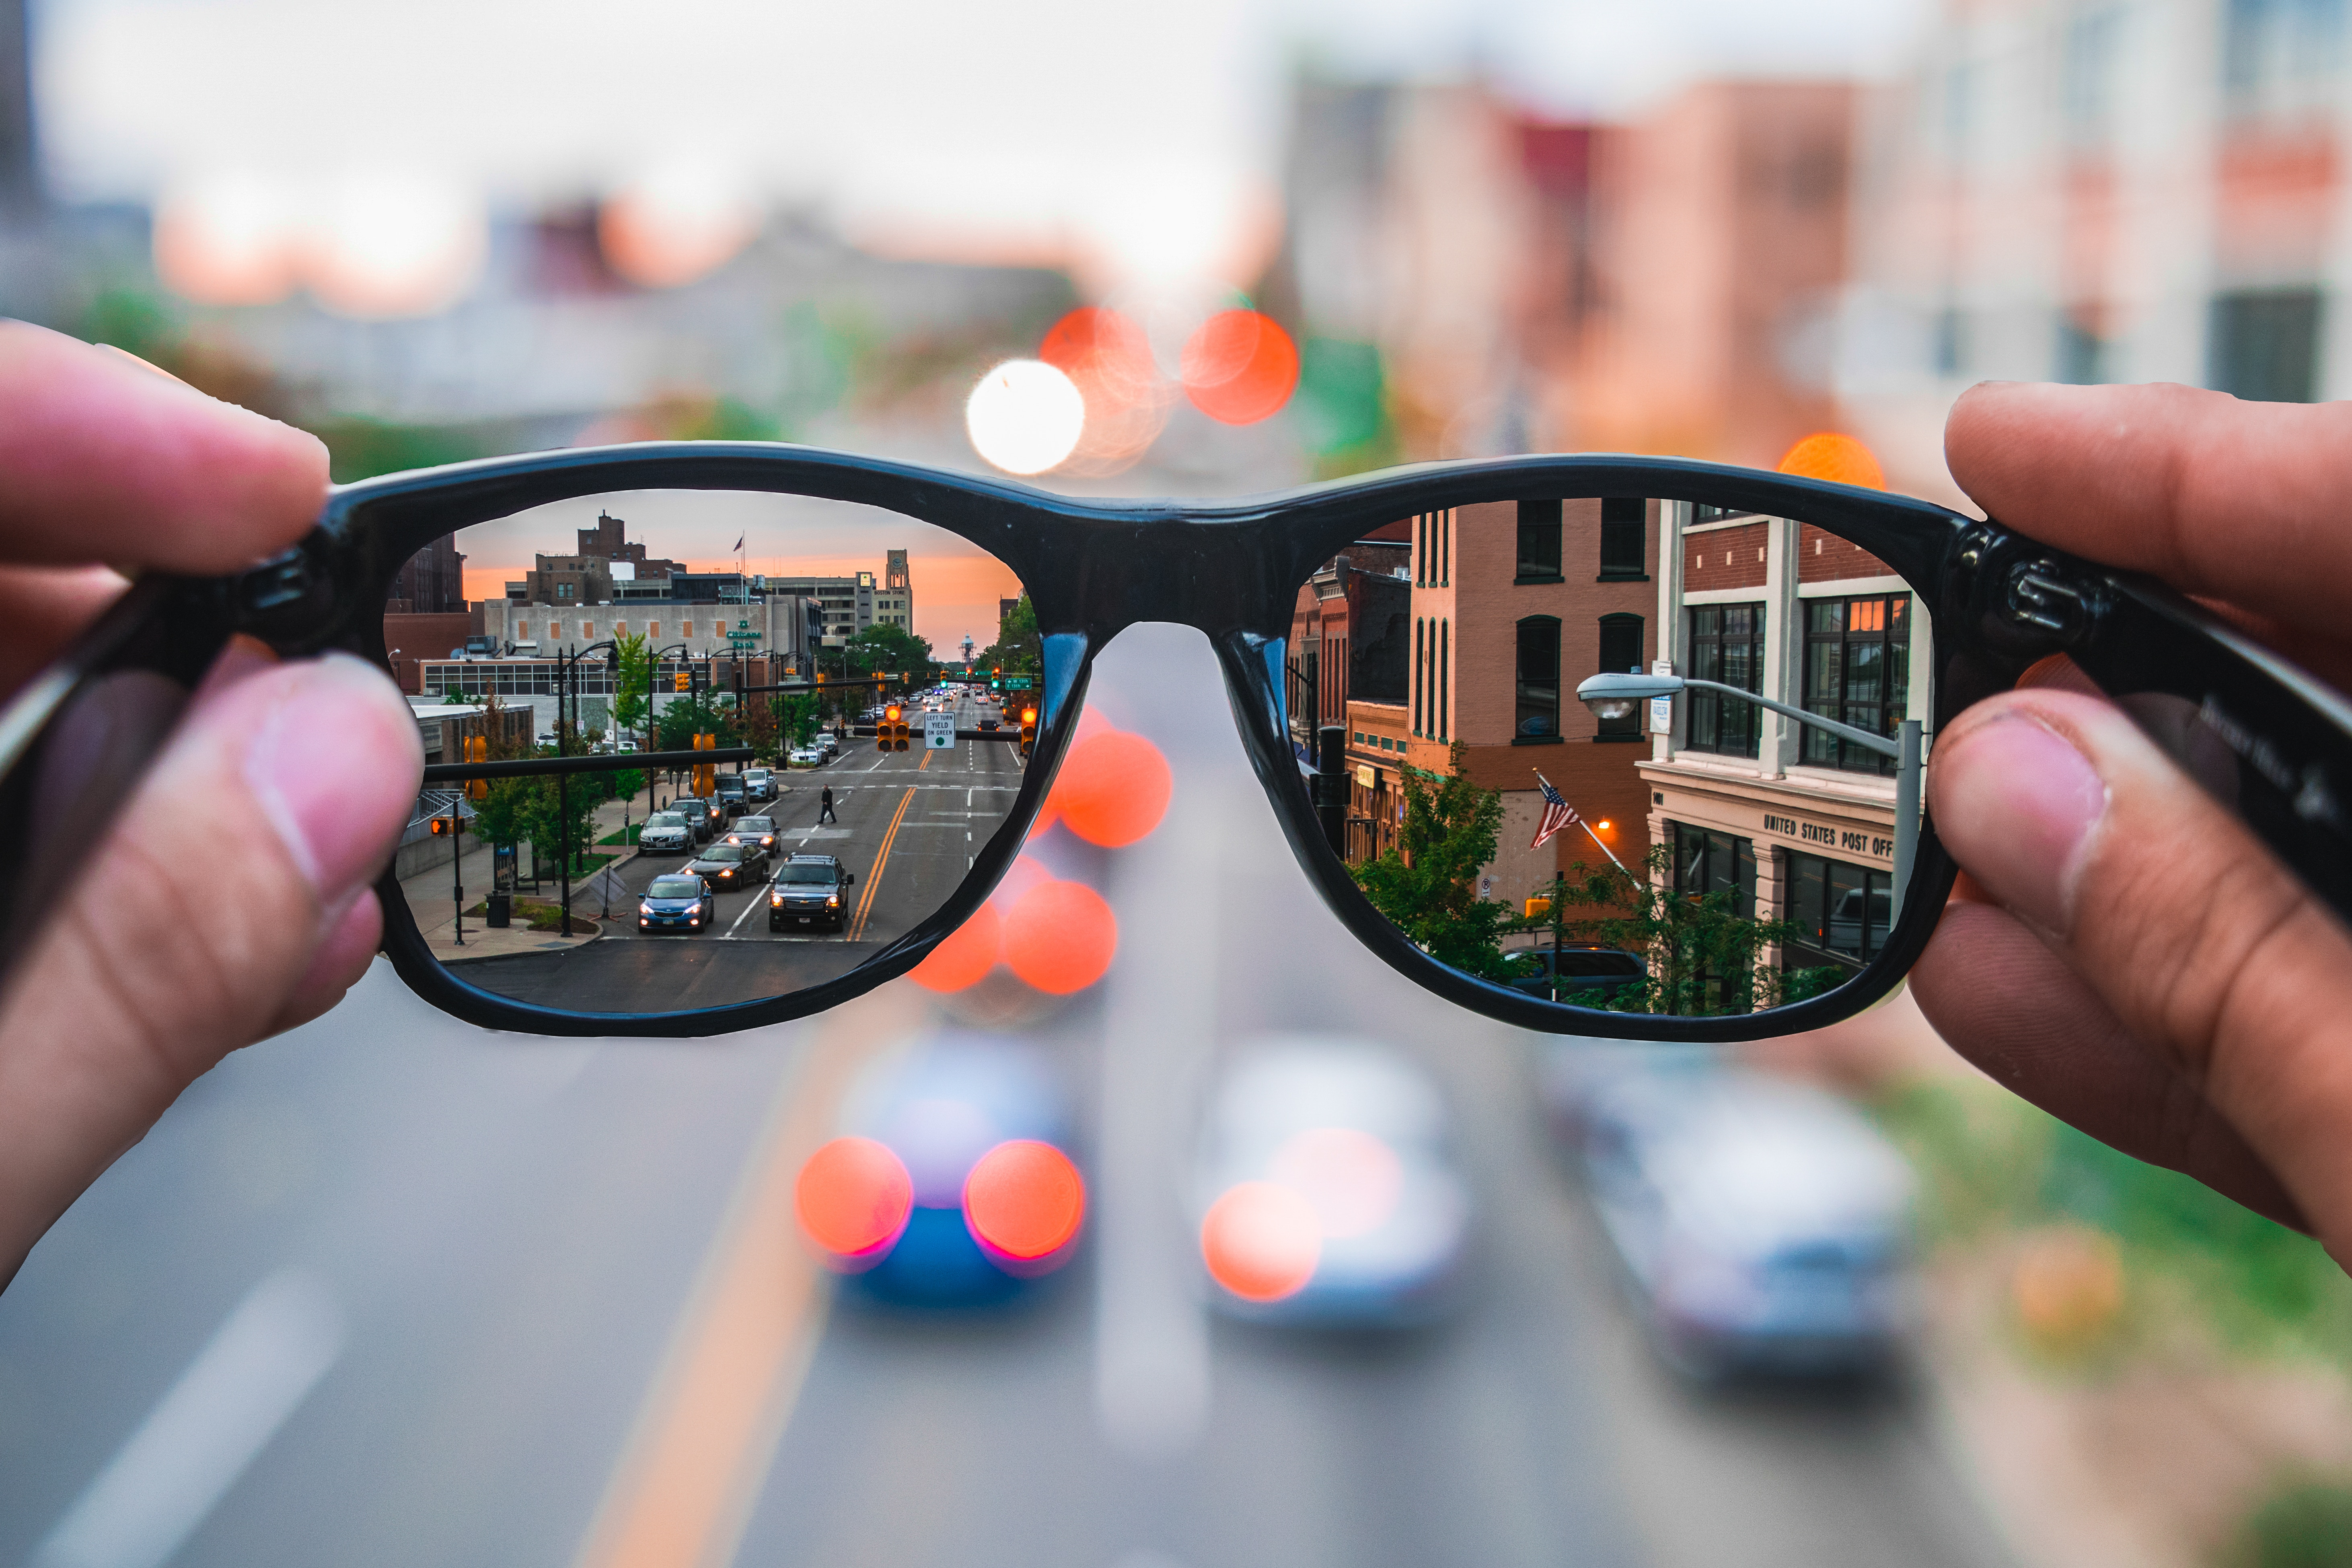 c8e310a0c91b 9 TIPS ON HOW TO PICK THE RIGHT SUNGLASSES FOR YOUR EYES